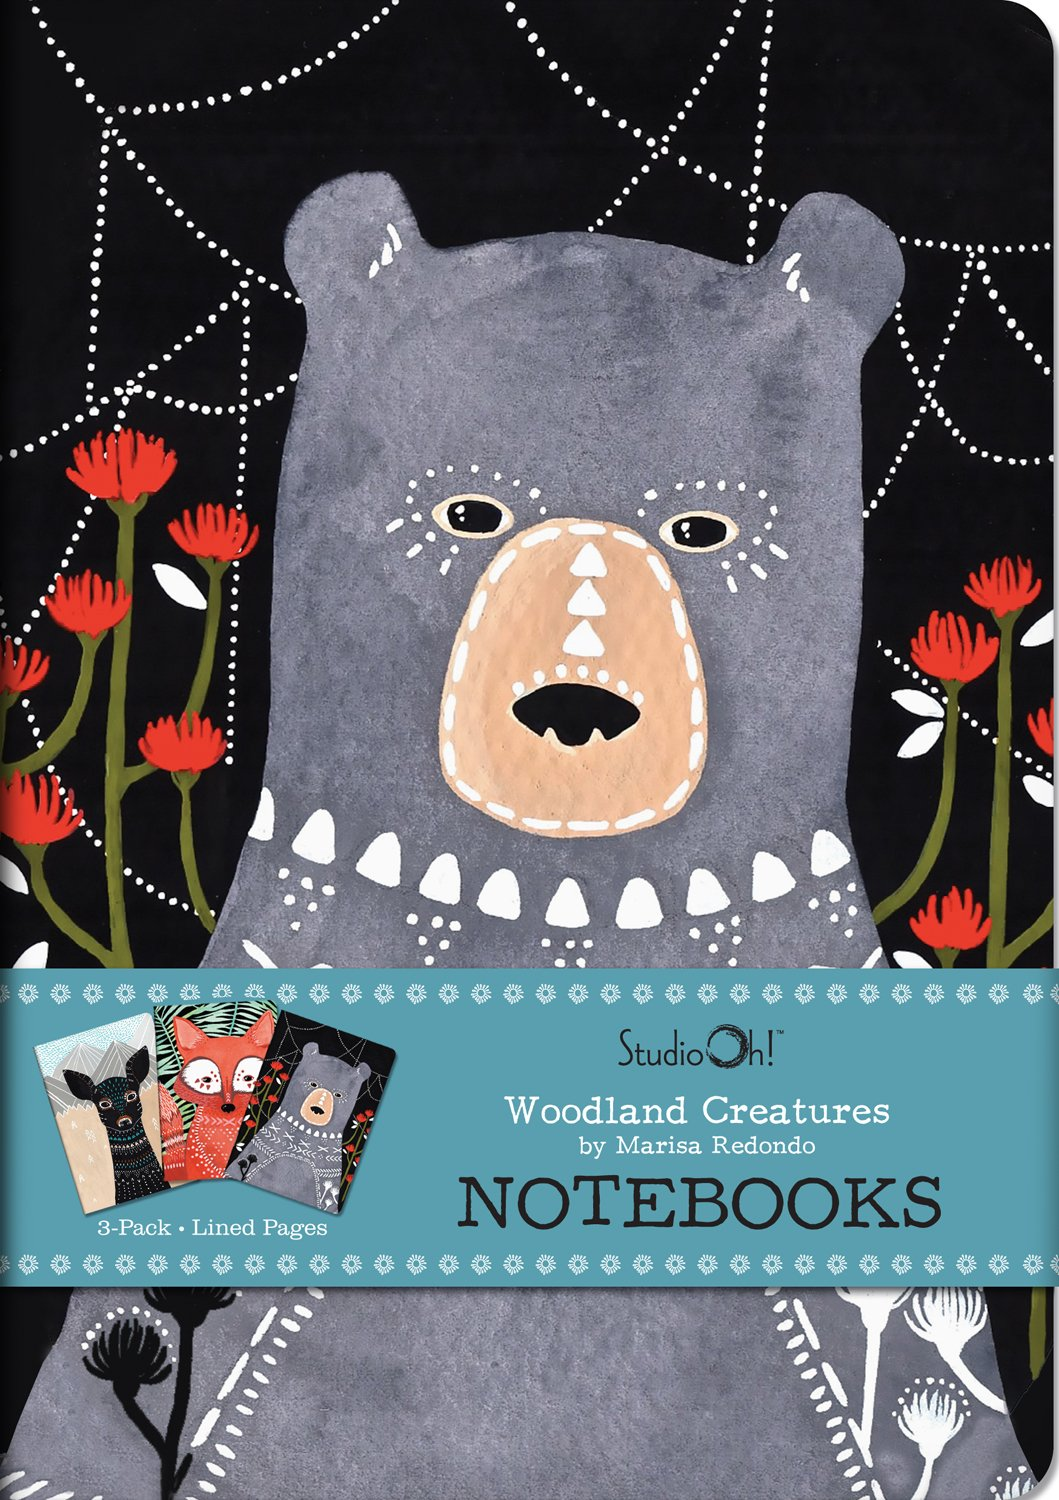 Studio Oh! Notebook Trio with 3 Coordinating Designs Available in 12 Different Assortments, Marissa Redondo Woodland Creatures